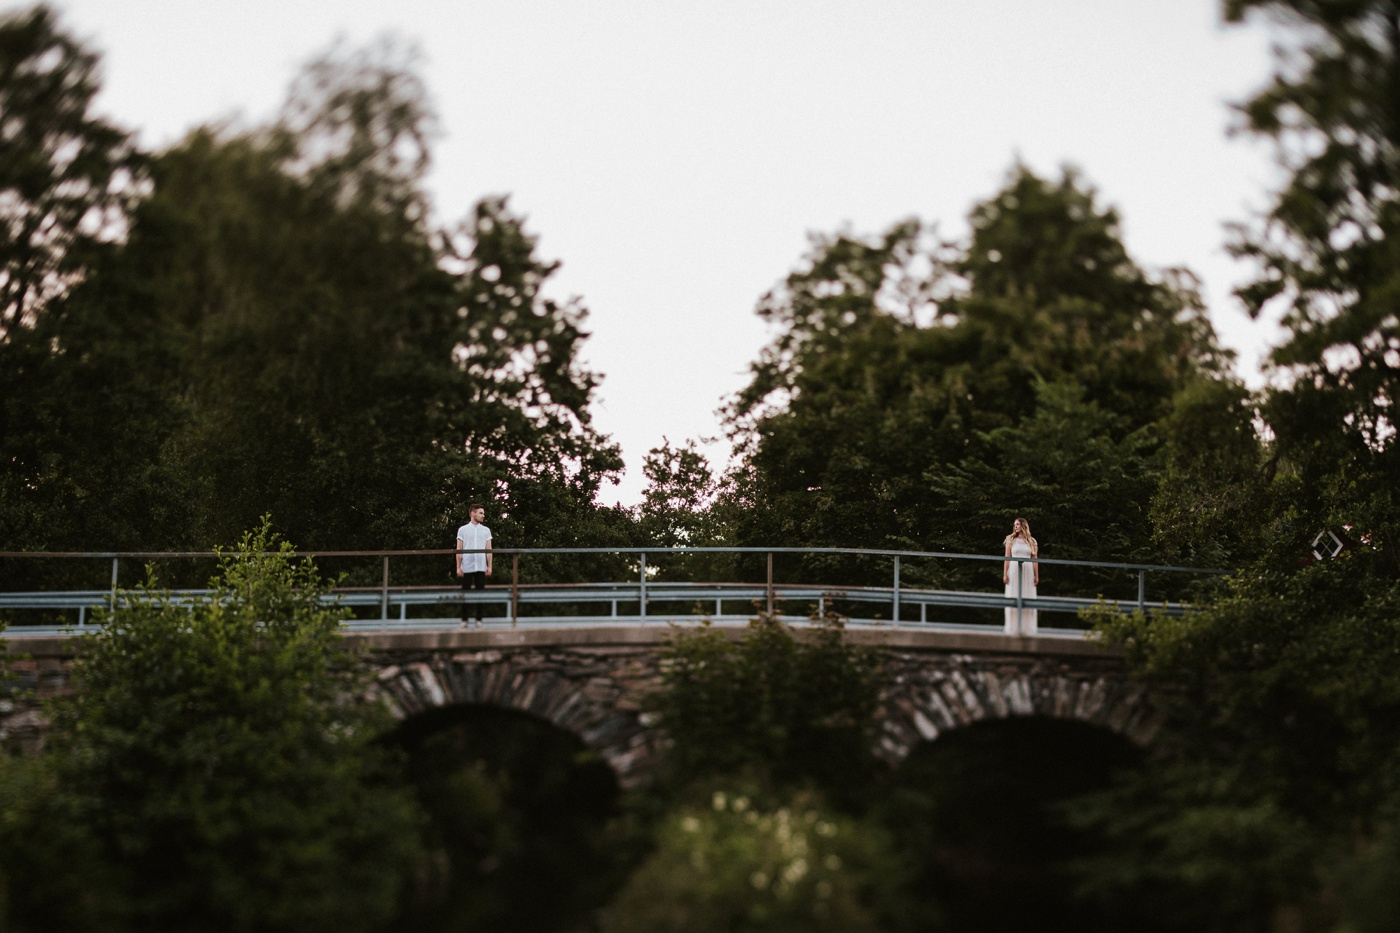 natalie-wictor_swedish-relaxed-candid-quirky-fun-engagement-session_23